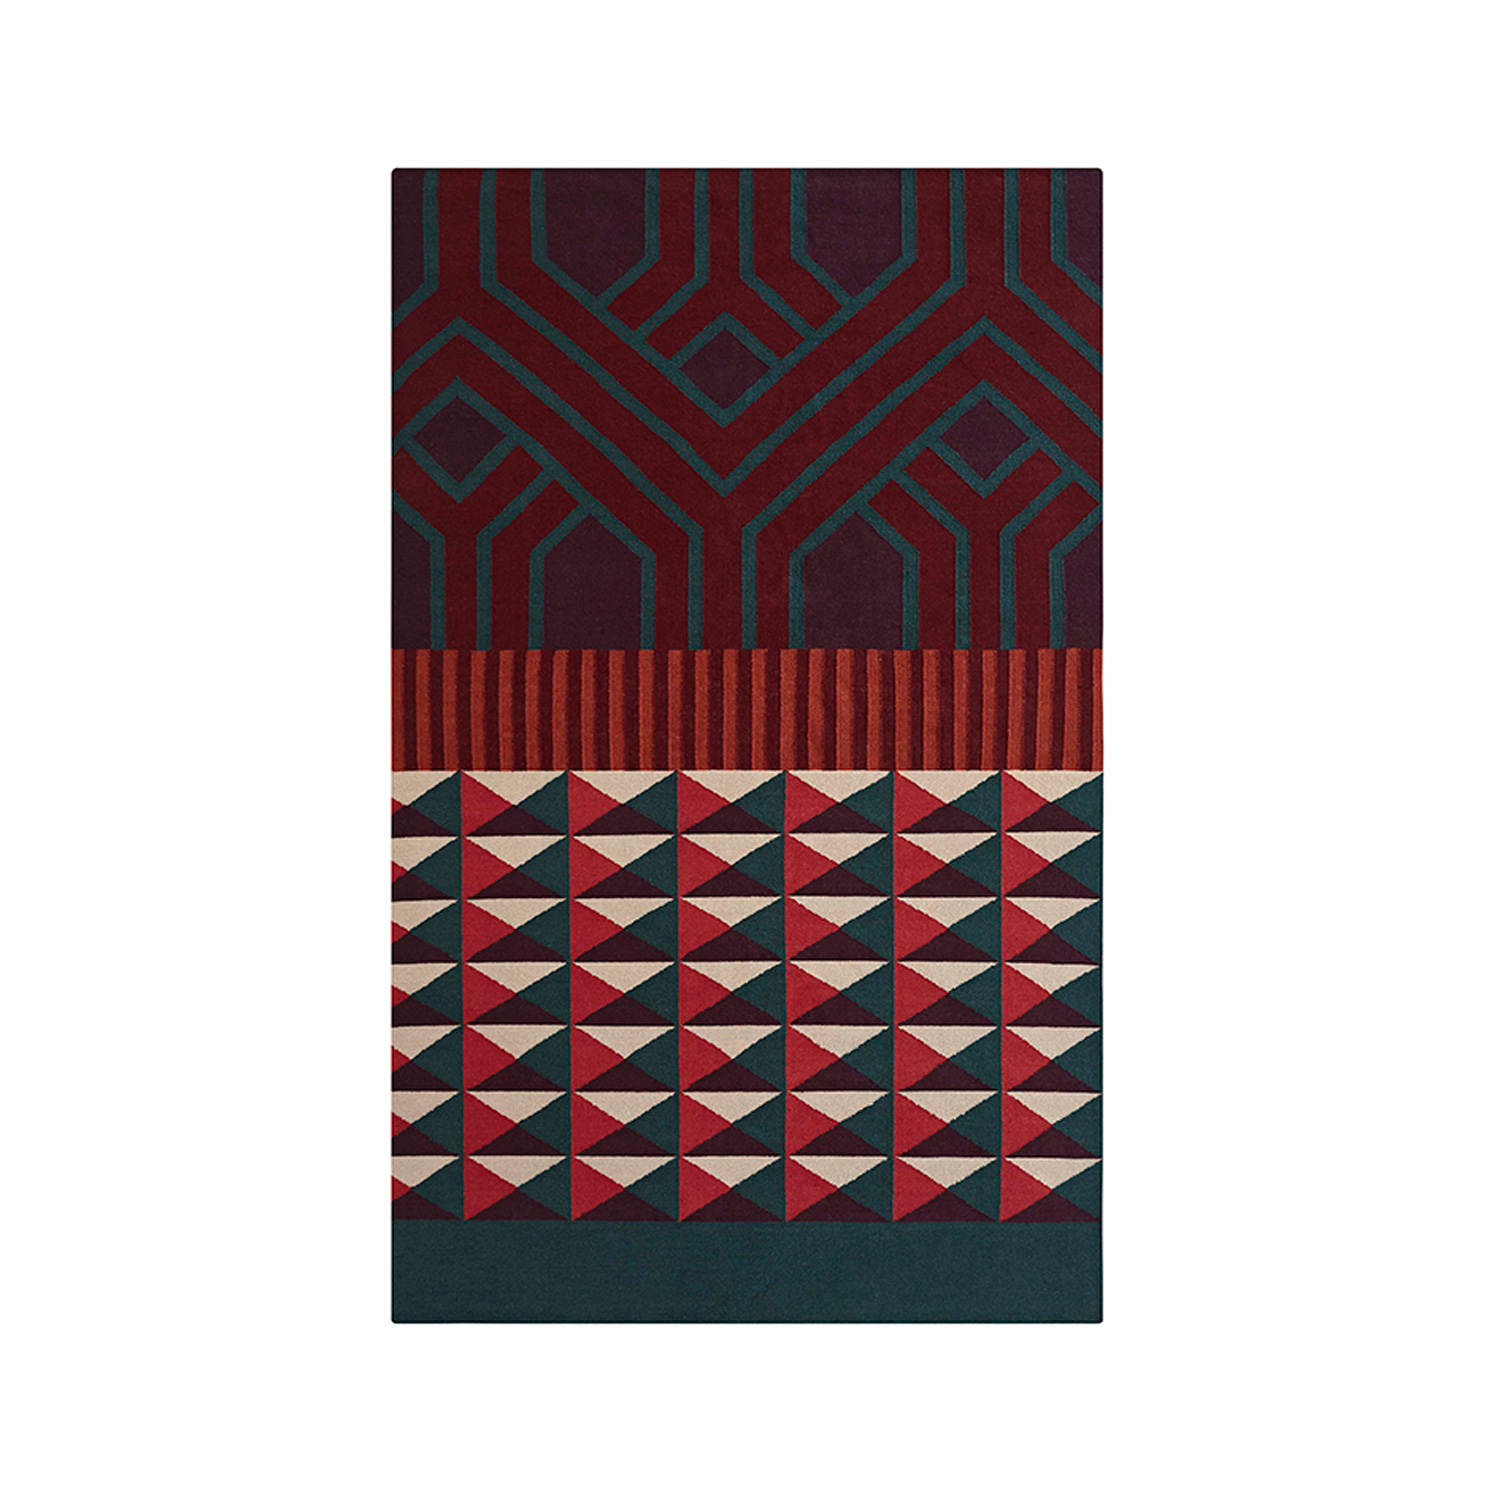 Ndebele Rug - The Ndebele rugs are inspired by the culture of the African Ndebele people, known for their colourful facades. These are traditionally painted by women, who paint and decorate their houses with murals of geometric motifs and bright colours. The Ndebele kilims of ethnic style and contemporary language playfully combine intense tones and rotund designs with the geometry of their strokes. A graphic reading of ethnic roots reinterpreted into a more modern look. Due to the handmade nature of the GAN product, slight variations in size, colour, finish are normal.   | Matter of Stuff